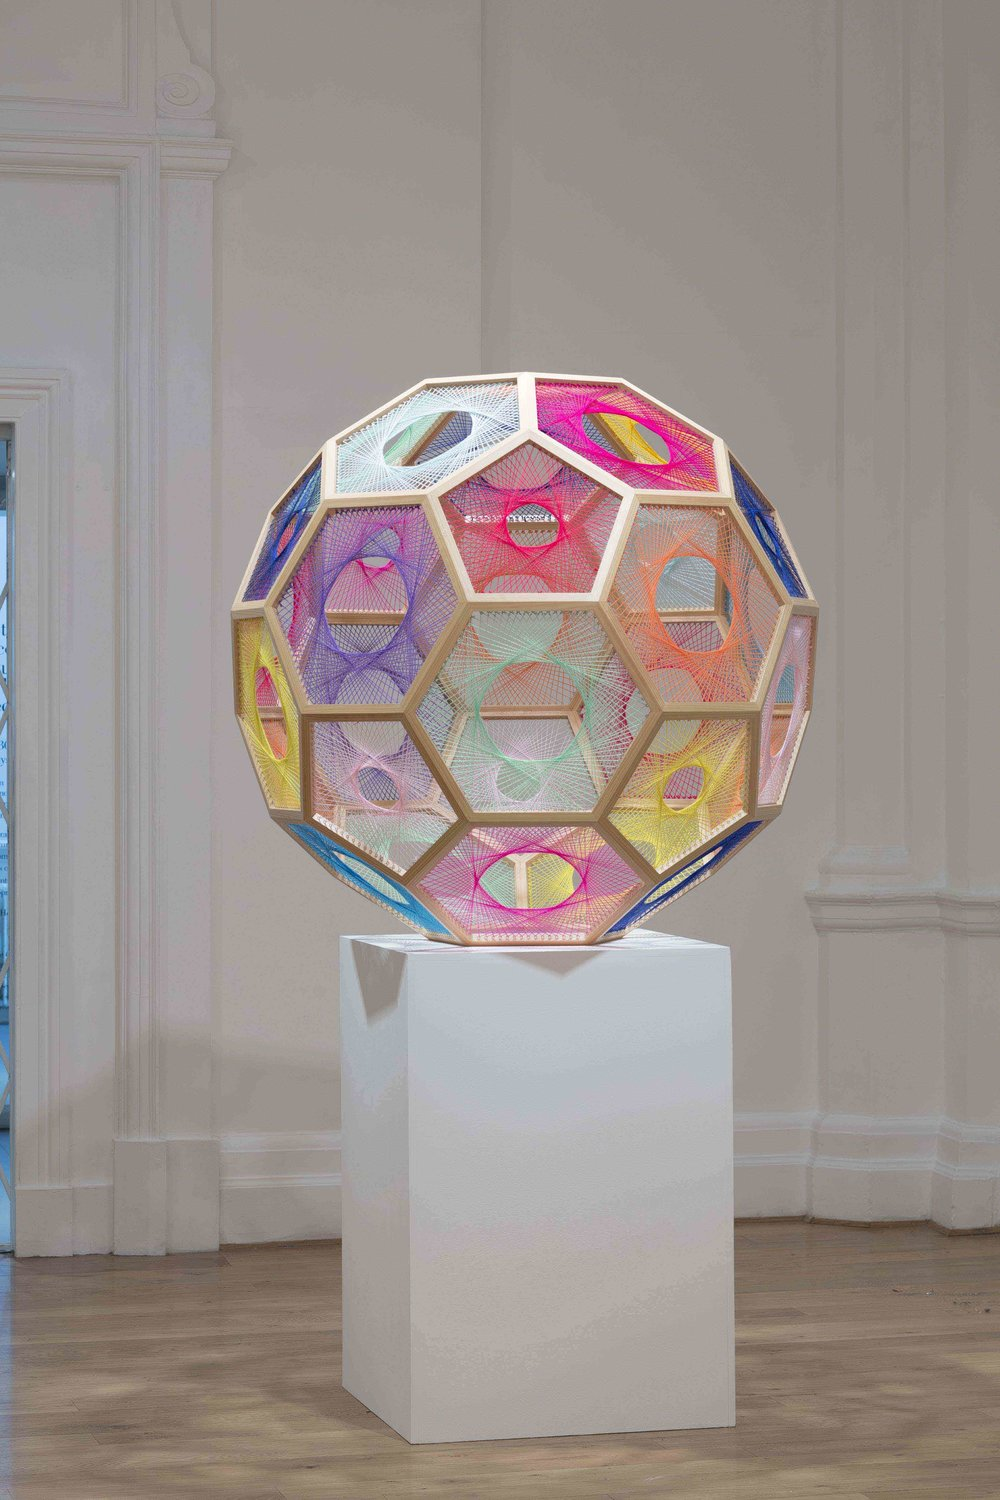 NIKE SAVVAS   Sliding Ladder: Truncated Icosahedron  2010 Wood, wool and steel 130 x 130 cm